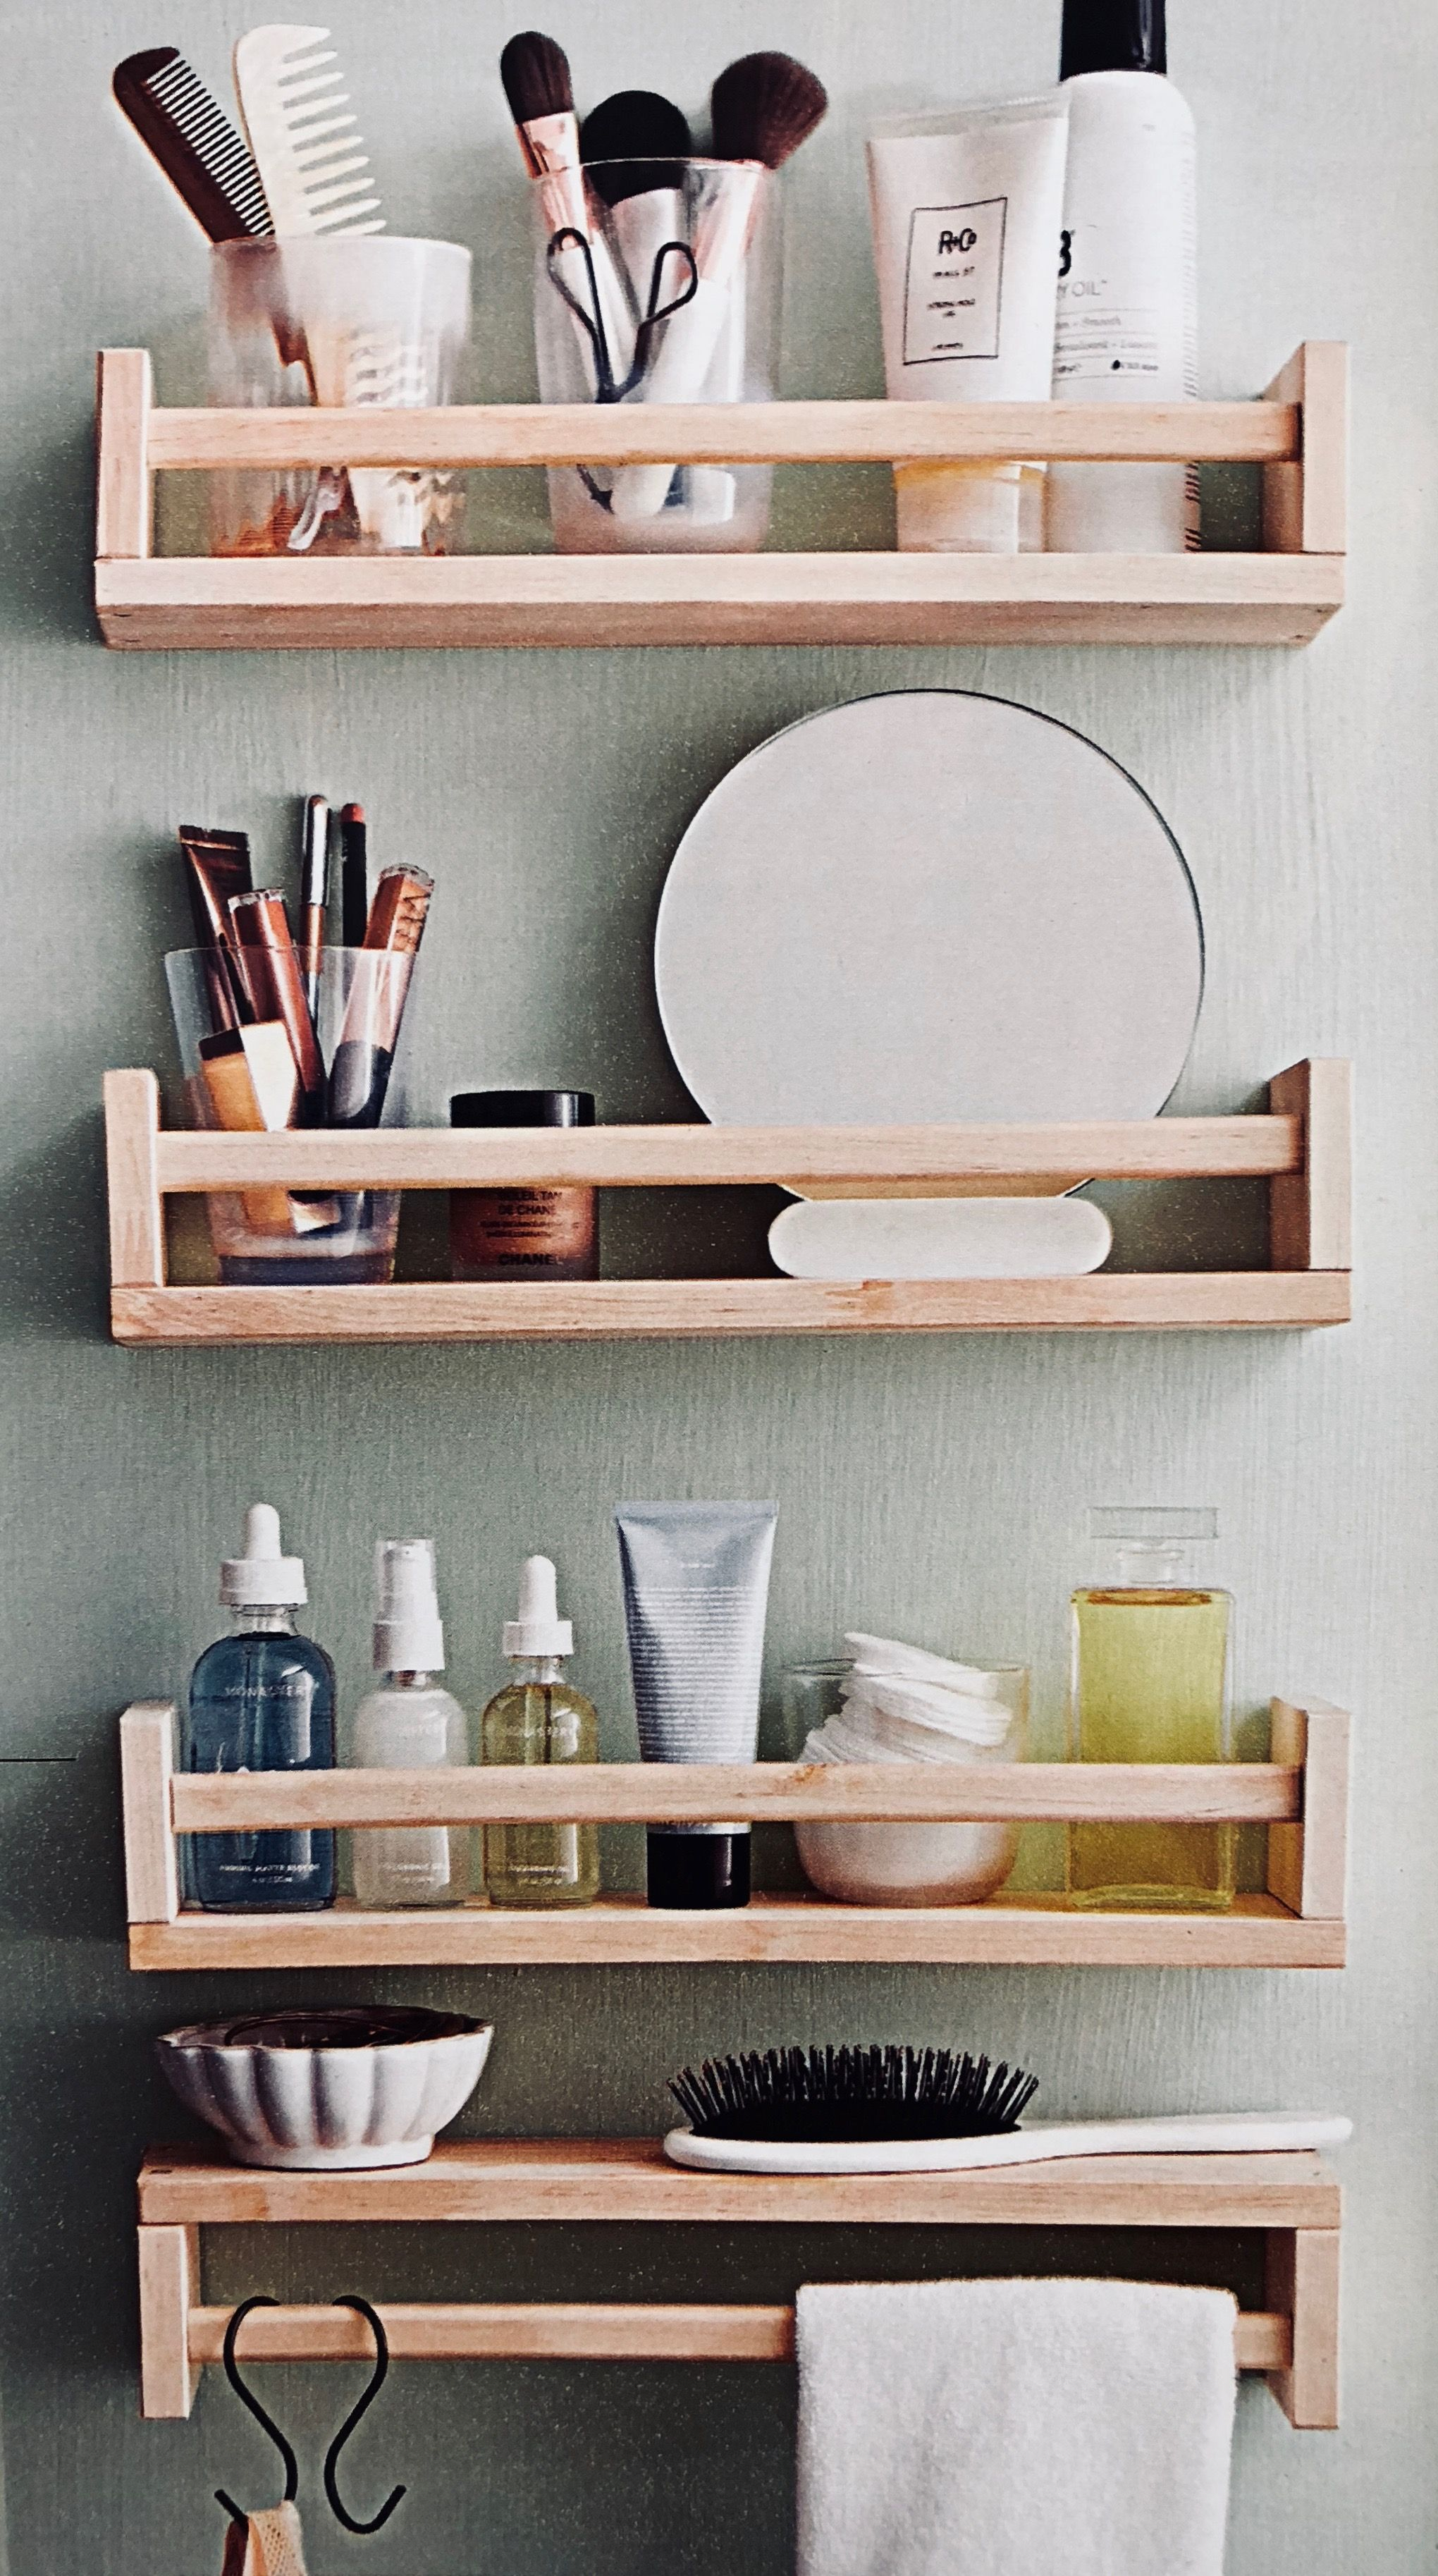 Ikea Bain Ikea Bekvam Spice Racks Love The Upside Down Idea Salle De